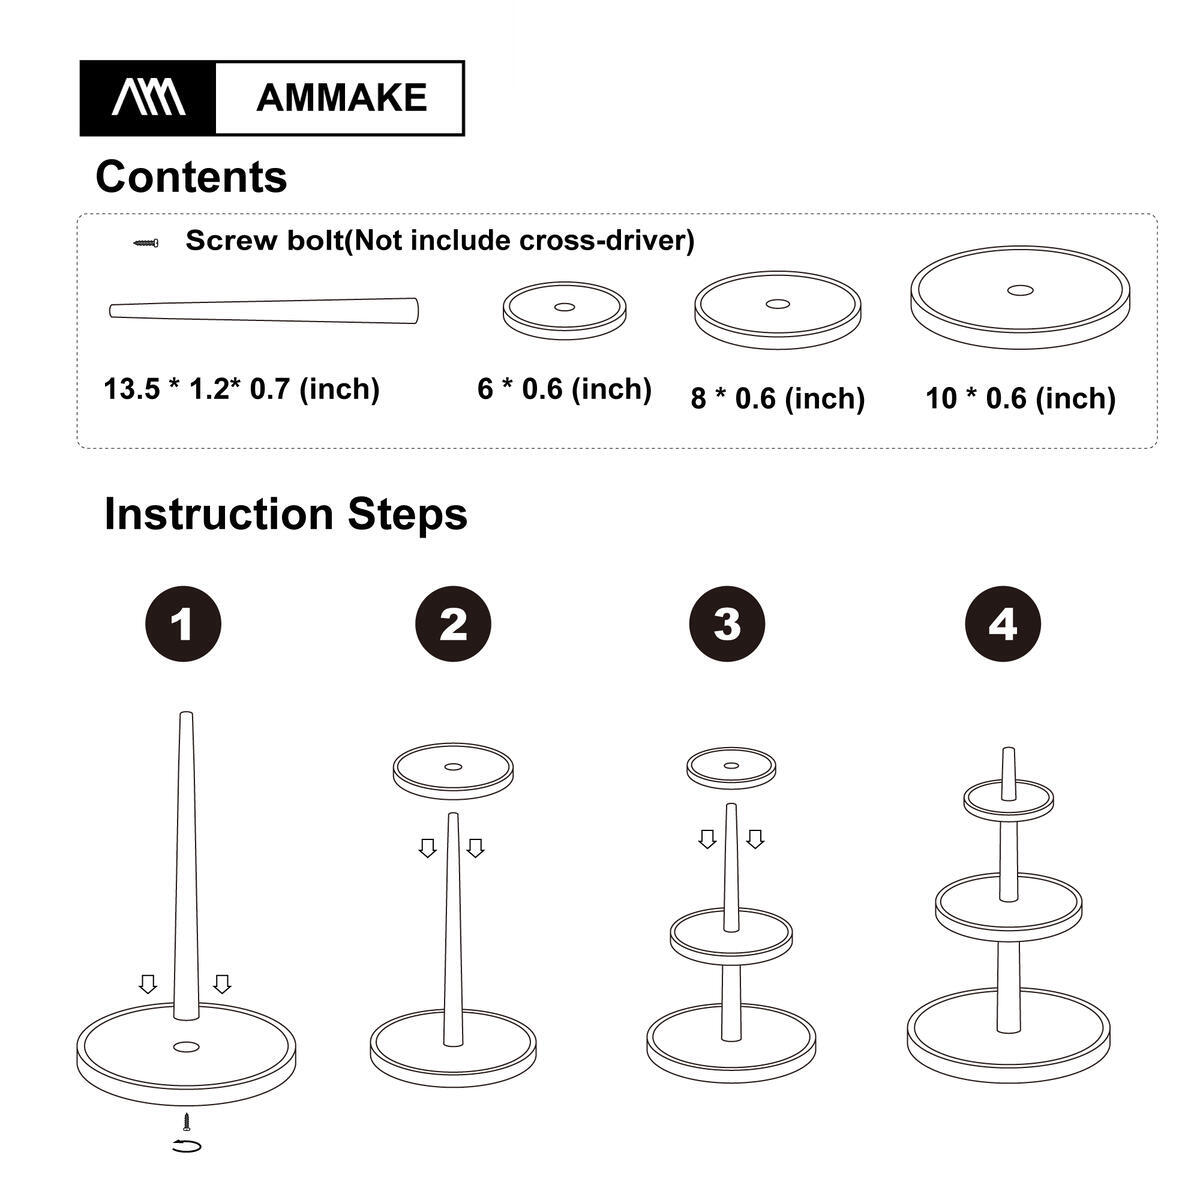 [AMMAKE]Premium Cupcake Stand/ 3 Tier Wooden Cake Holder / Dessert Plates Mini Cakes Fruit Candy Display Tower for Birthday Tea Party Baby Shower Serving Tray